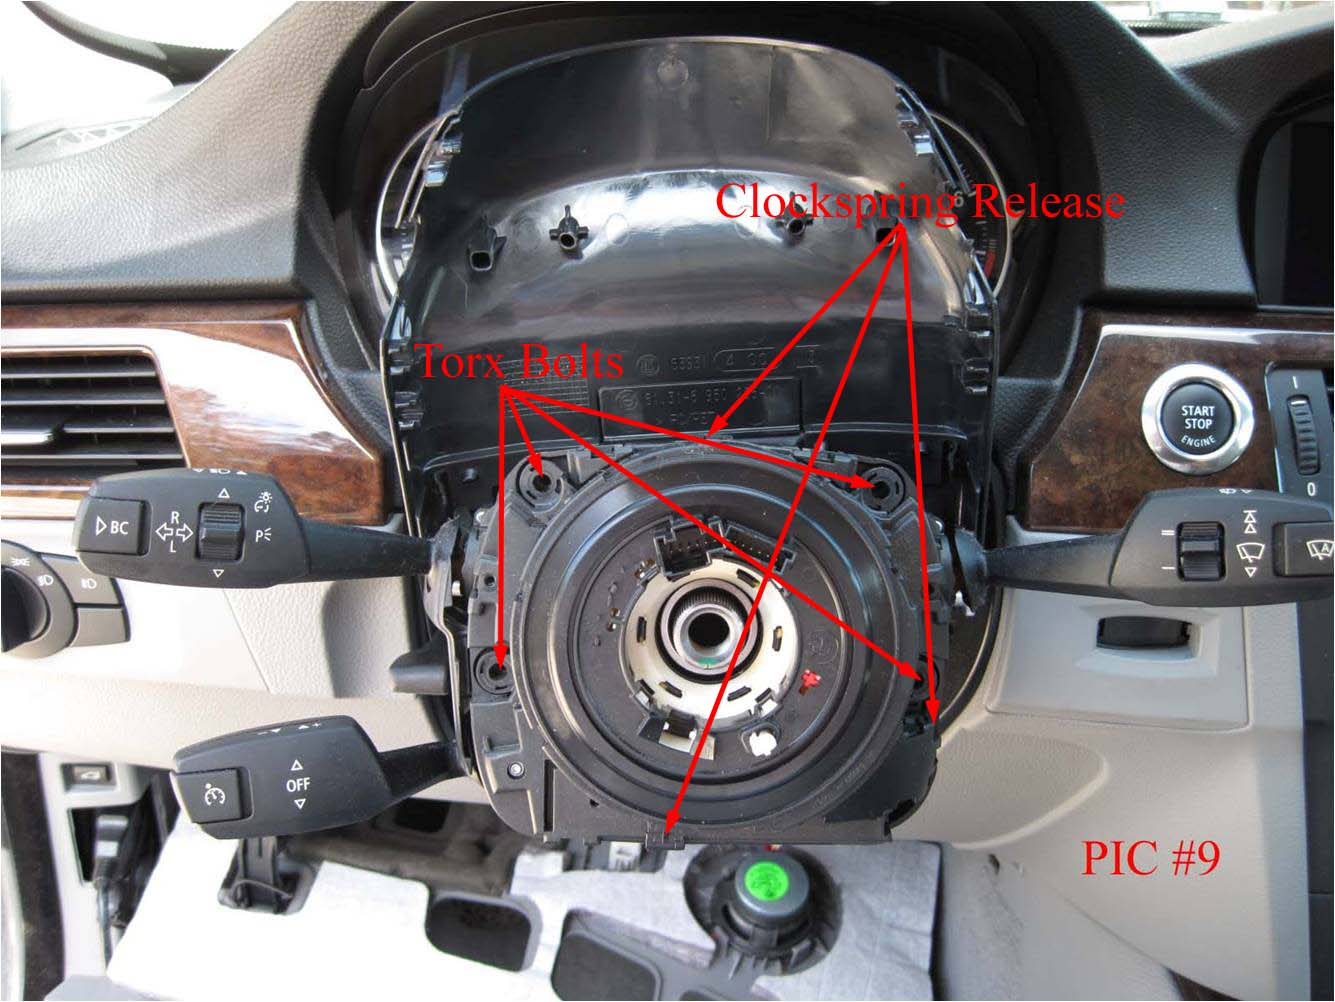 My $0.02 Steering Angle Sensor Fix on a35 wiring diagram, e38 wiring diagram, e46 o2 sensor wiring, e67 wiring diagram, e60 wiring diagram, e32 wiring diagram, e46 trunk wiring, e30 wiring diagram, e34 wiring diagram, e46 starter, z1 wiring diagram, s14 wiring diagram, bmw wiring diagram, e47 wiring diagram, e53 wiring diagram, e24 wiring diagram, e1 wiring diagram, z8 wiring diagram, x1 wiring diagram, e46 dimensions,